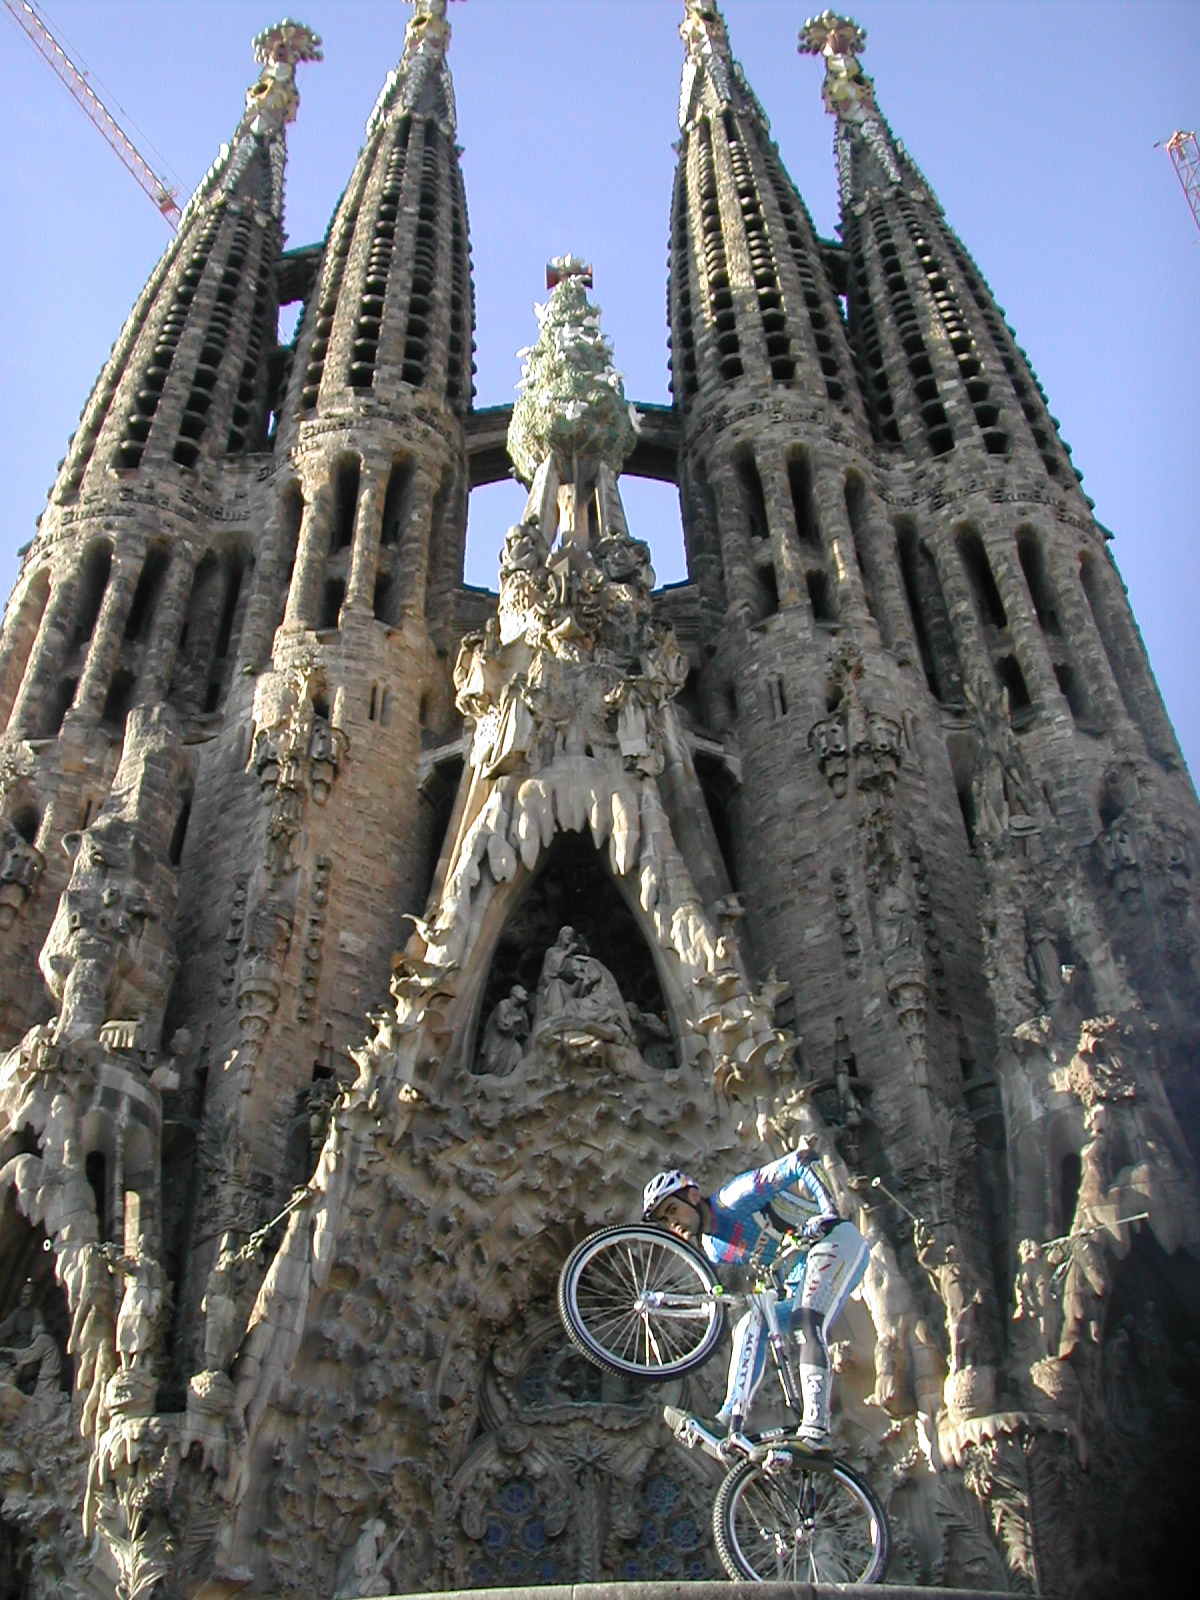 Pinterest the world s catalog of ideas for Barcelona famila